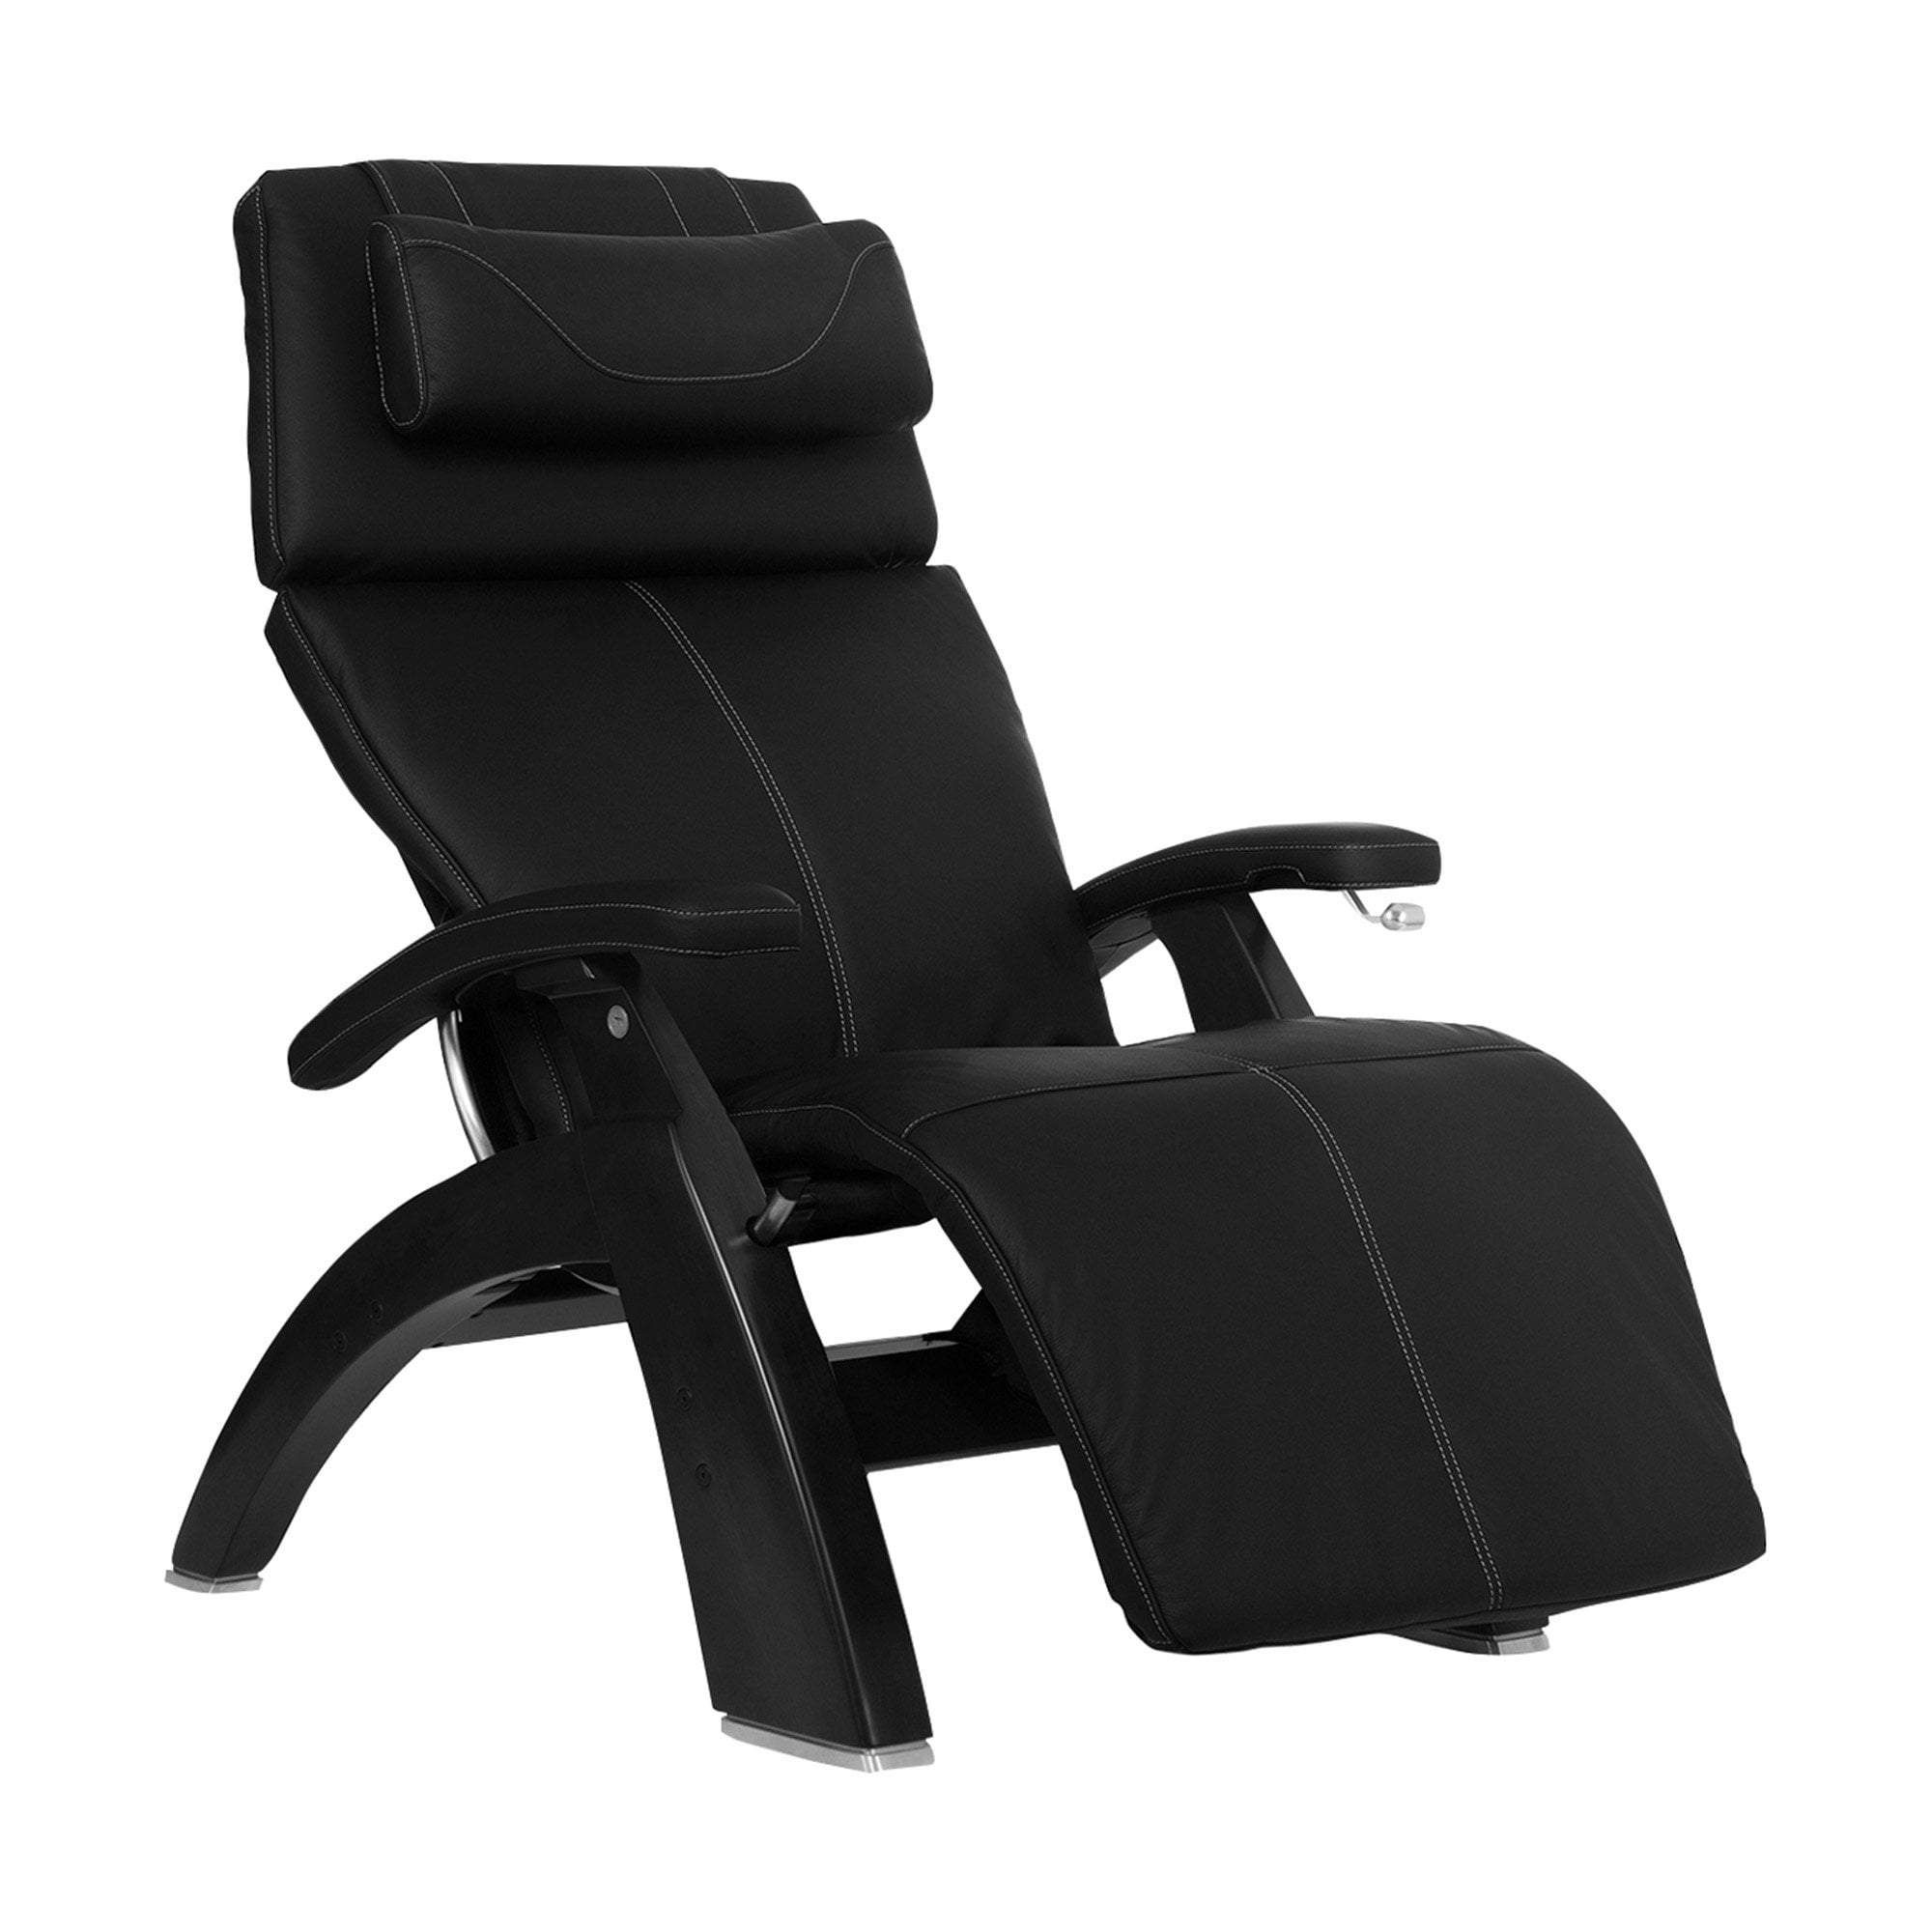 Human Touch Perfect Chair Zero Gravity Chair Perfect Chair Zero Gravity Chair Black Chair